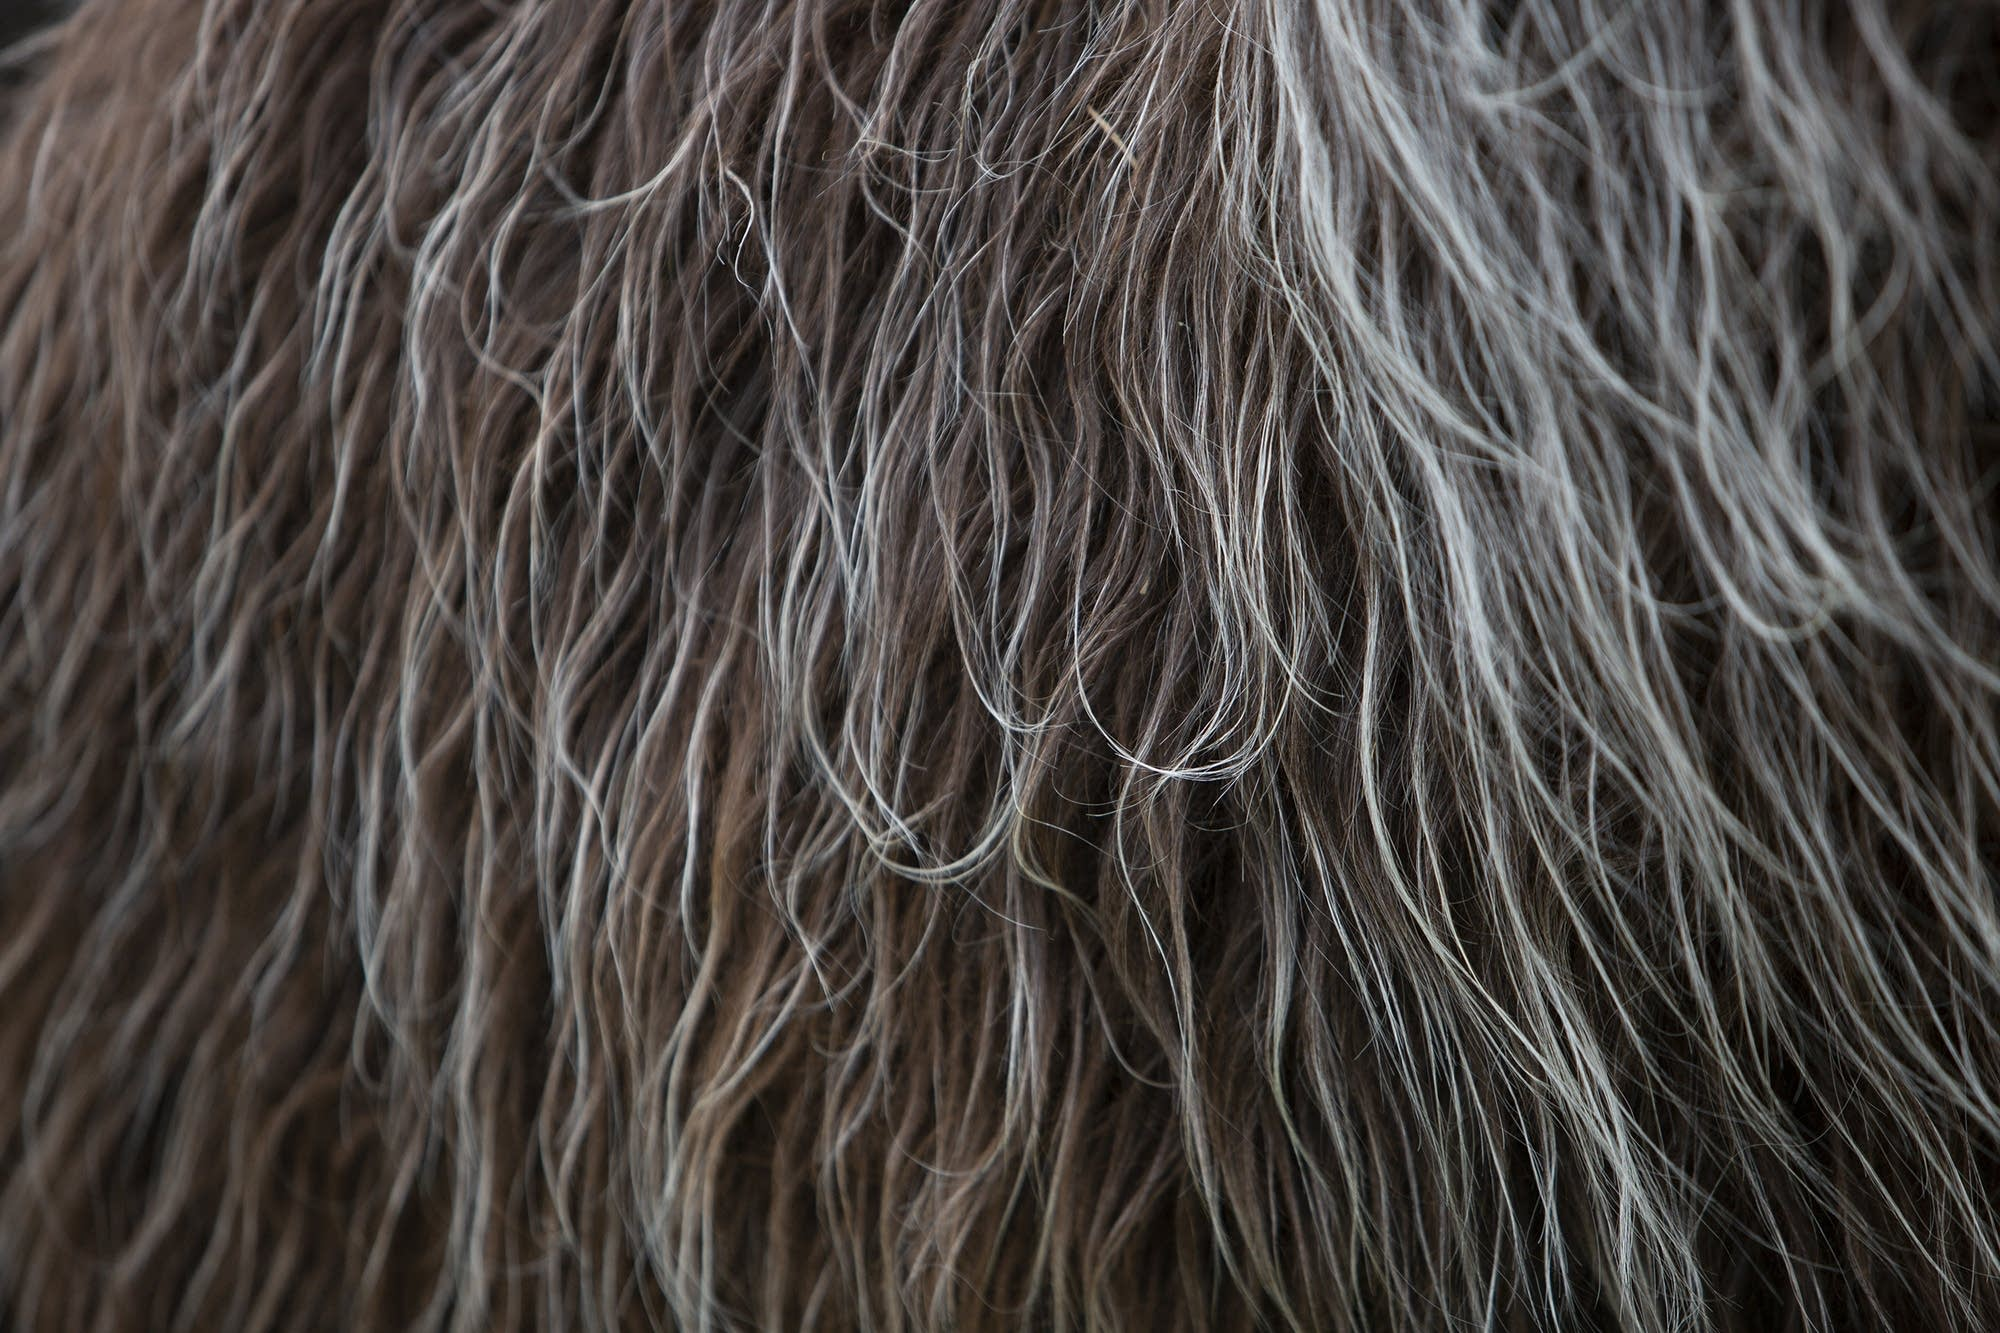 Llama fleece consists of an outer coat and an insulating undercoat.